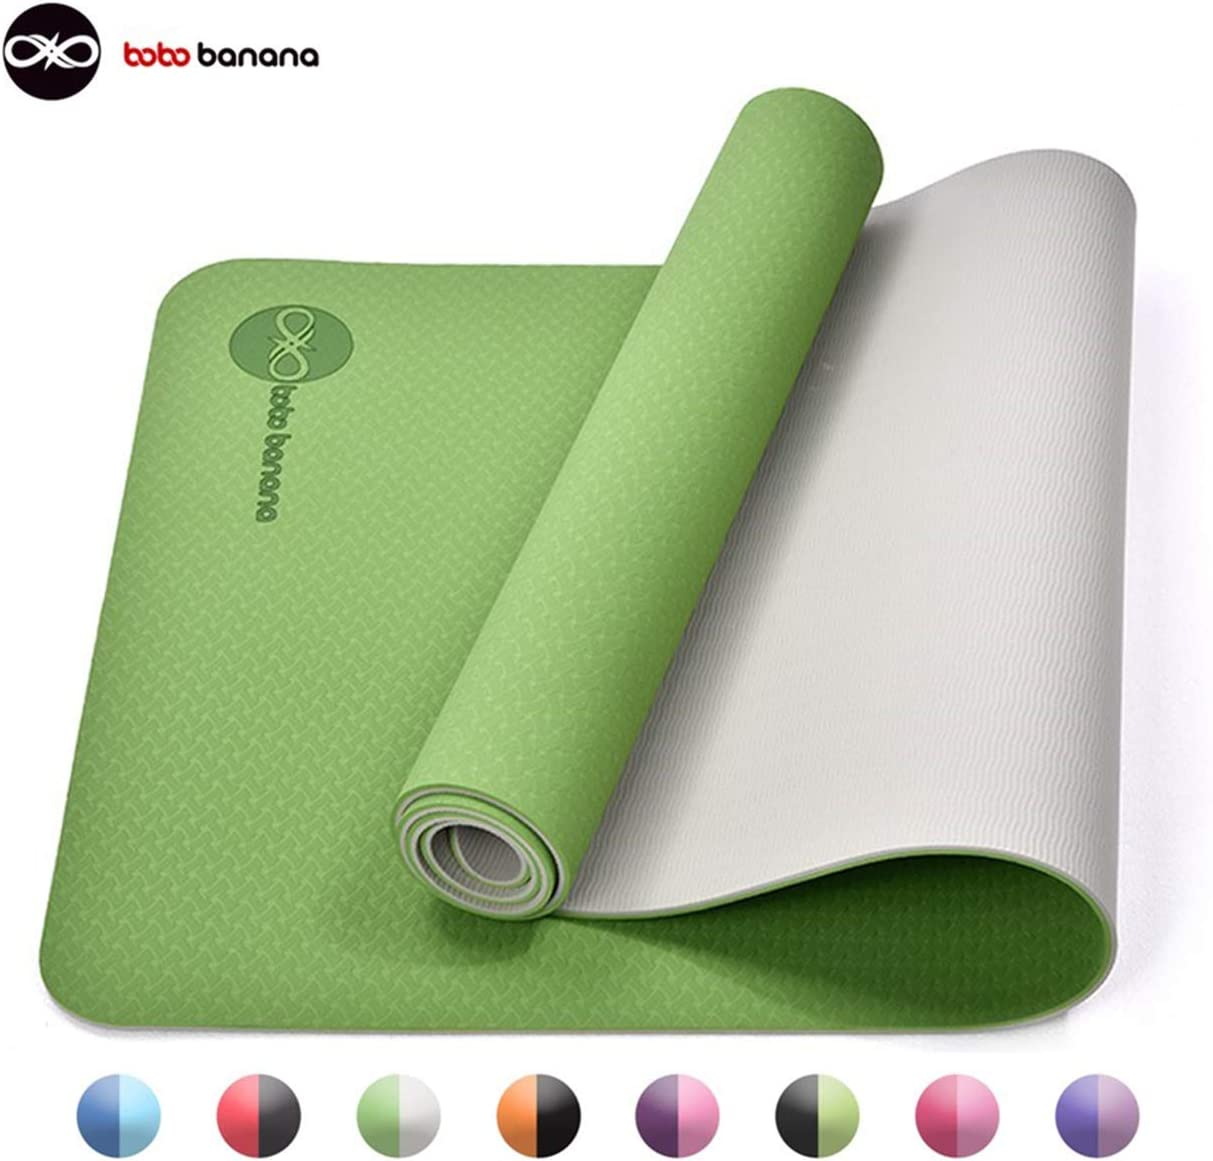 bobo banana Yoga Mat, TPE Non-Slip Fitness Mat Dual Color Exercise Mat for Yoga Gymnastics, Pilates Floor Exercises